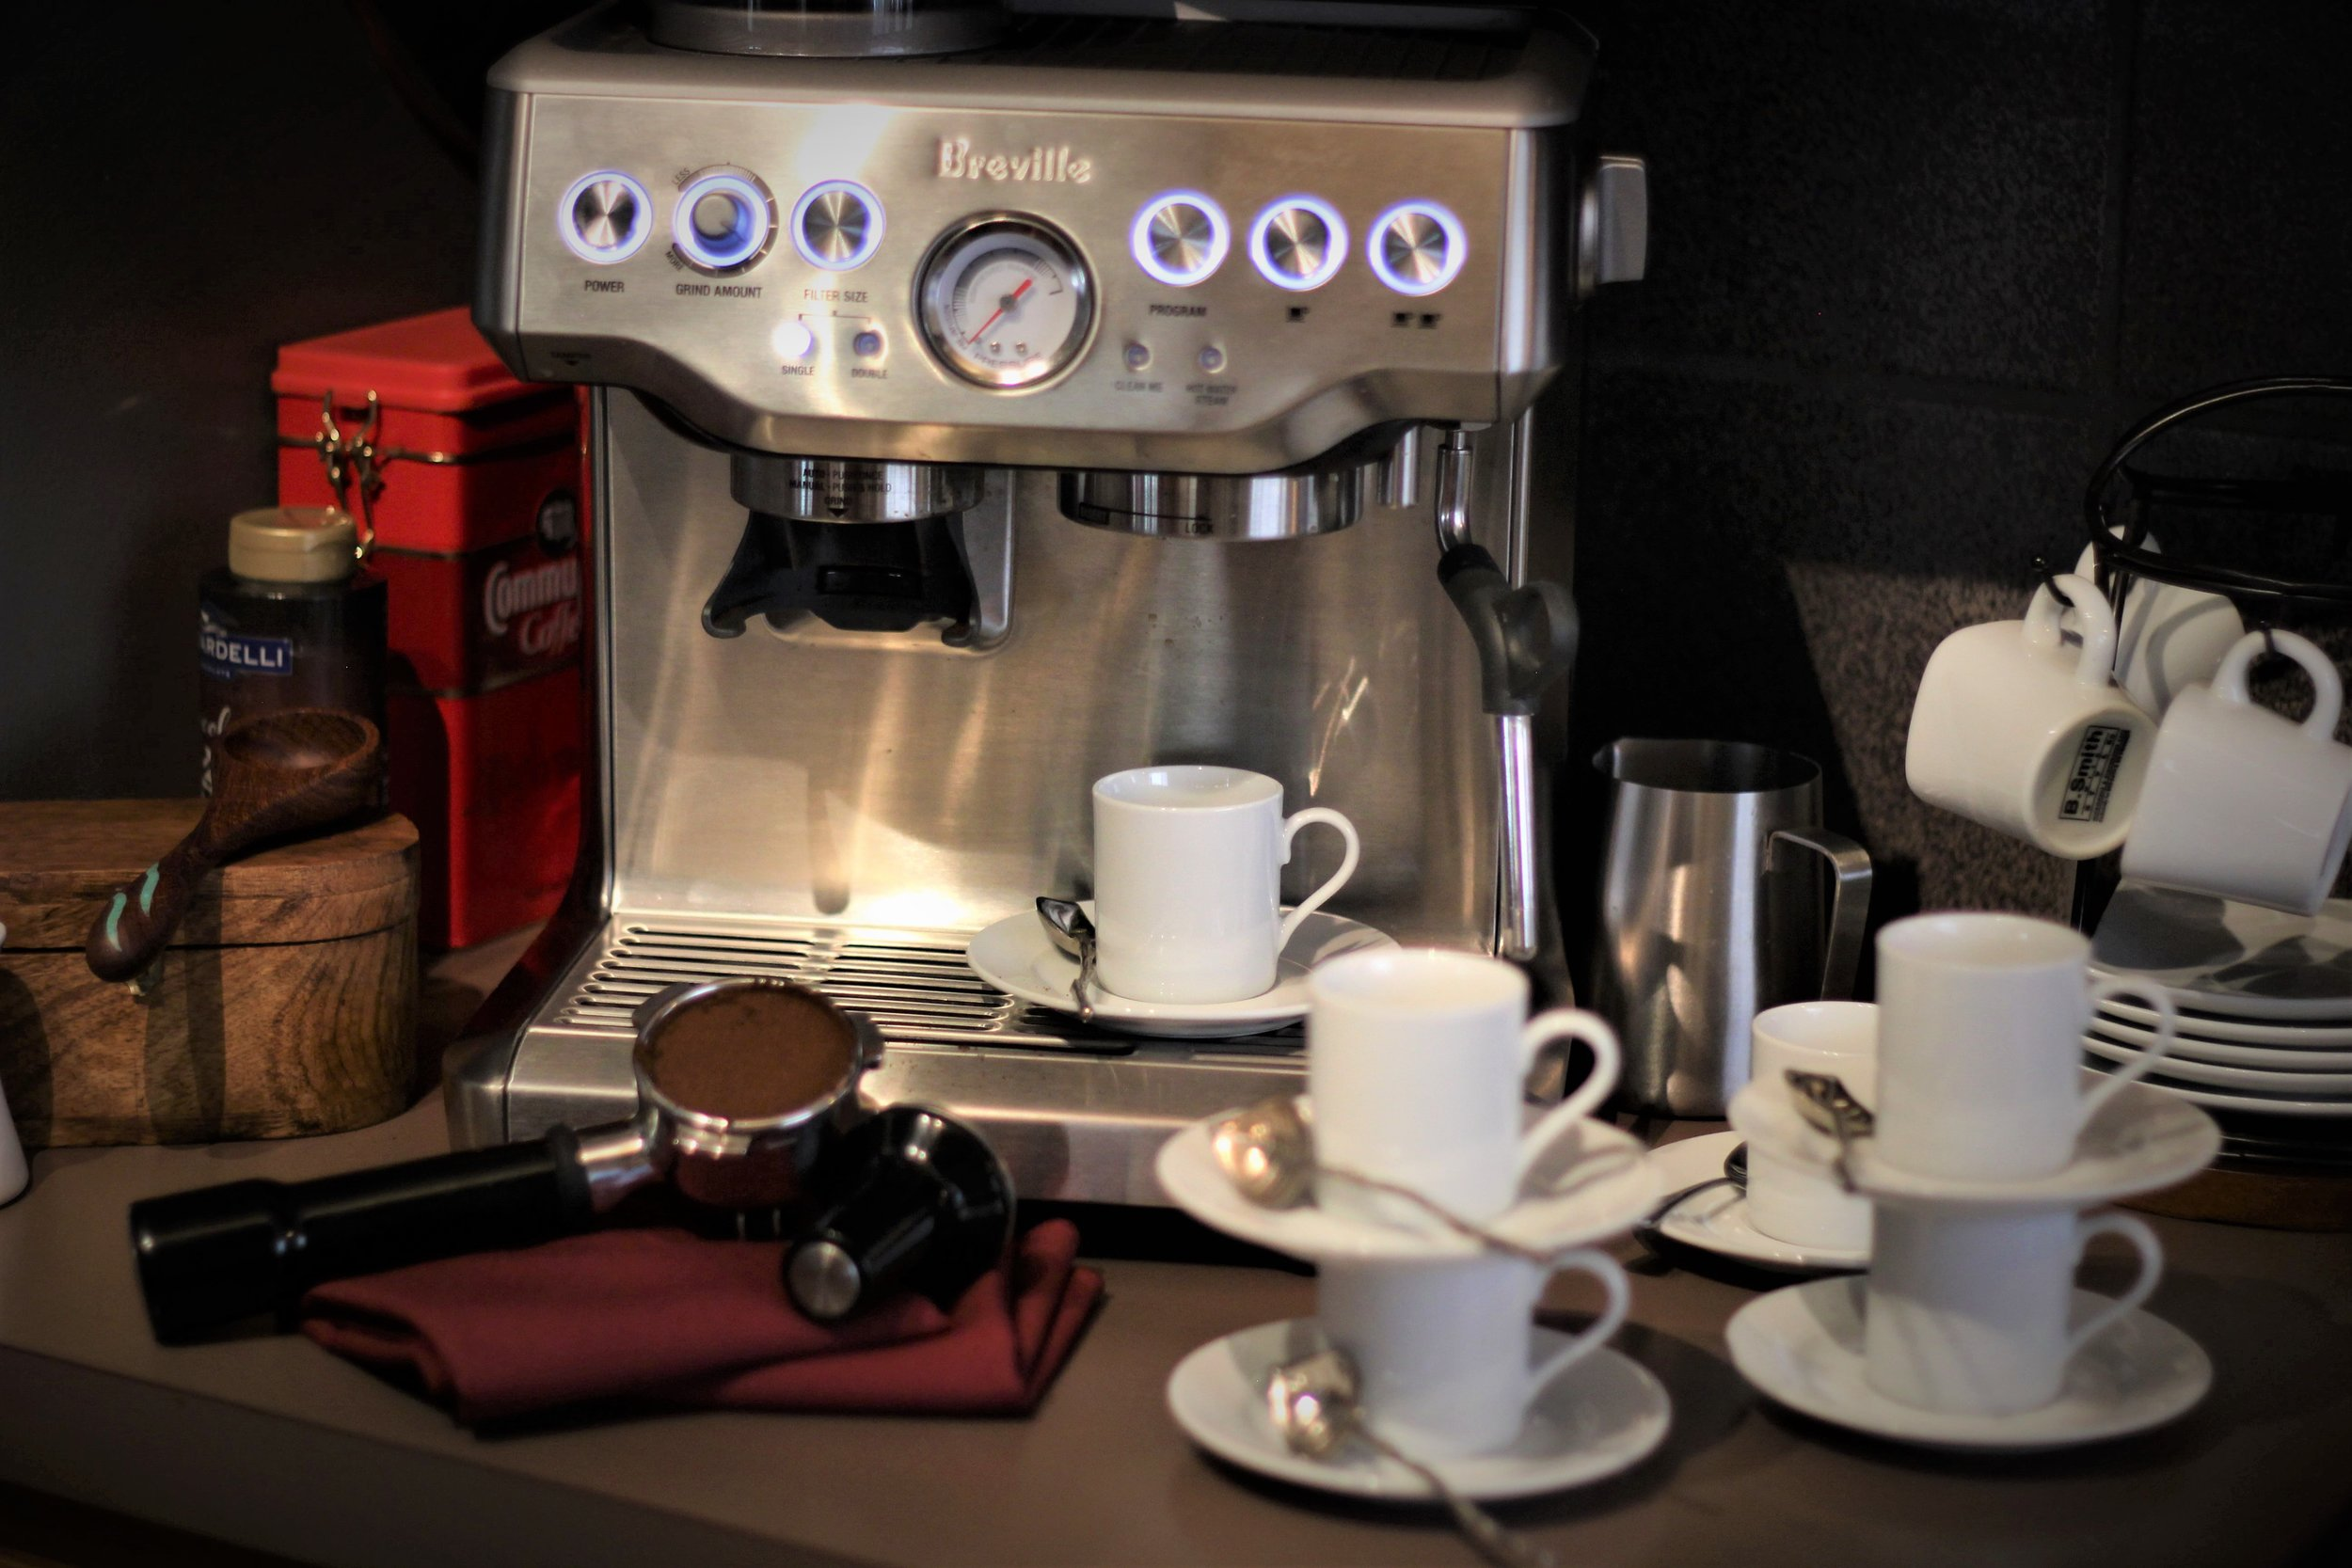 Espresso Machine with Cups